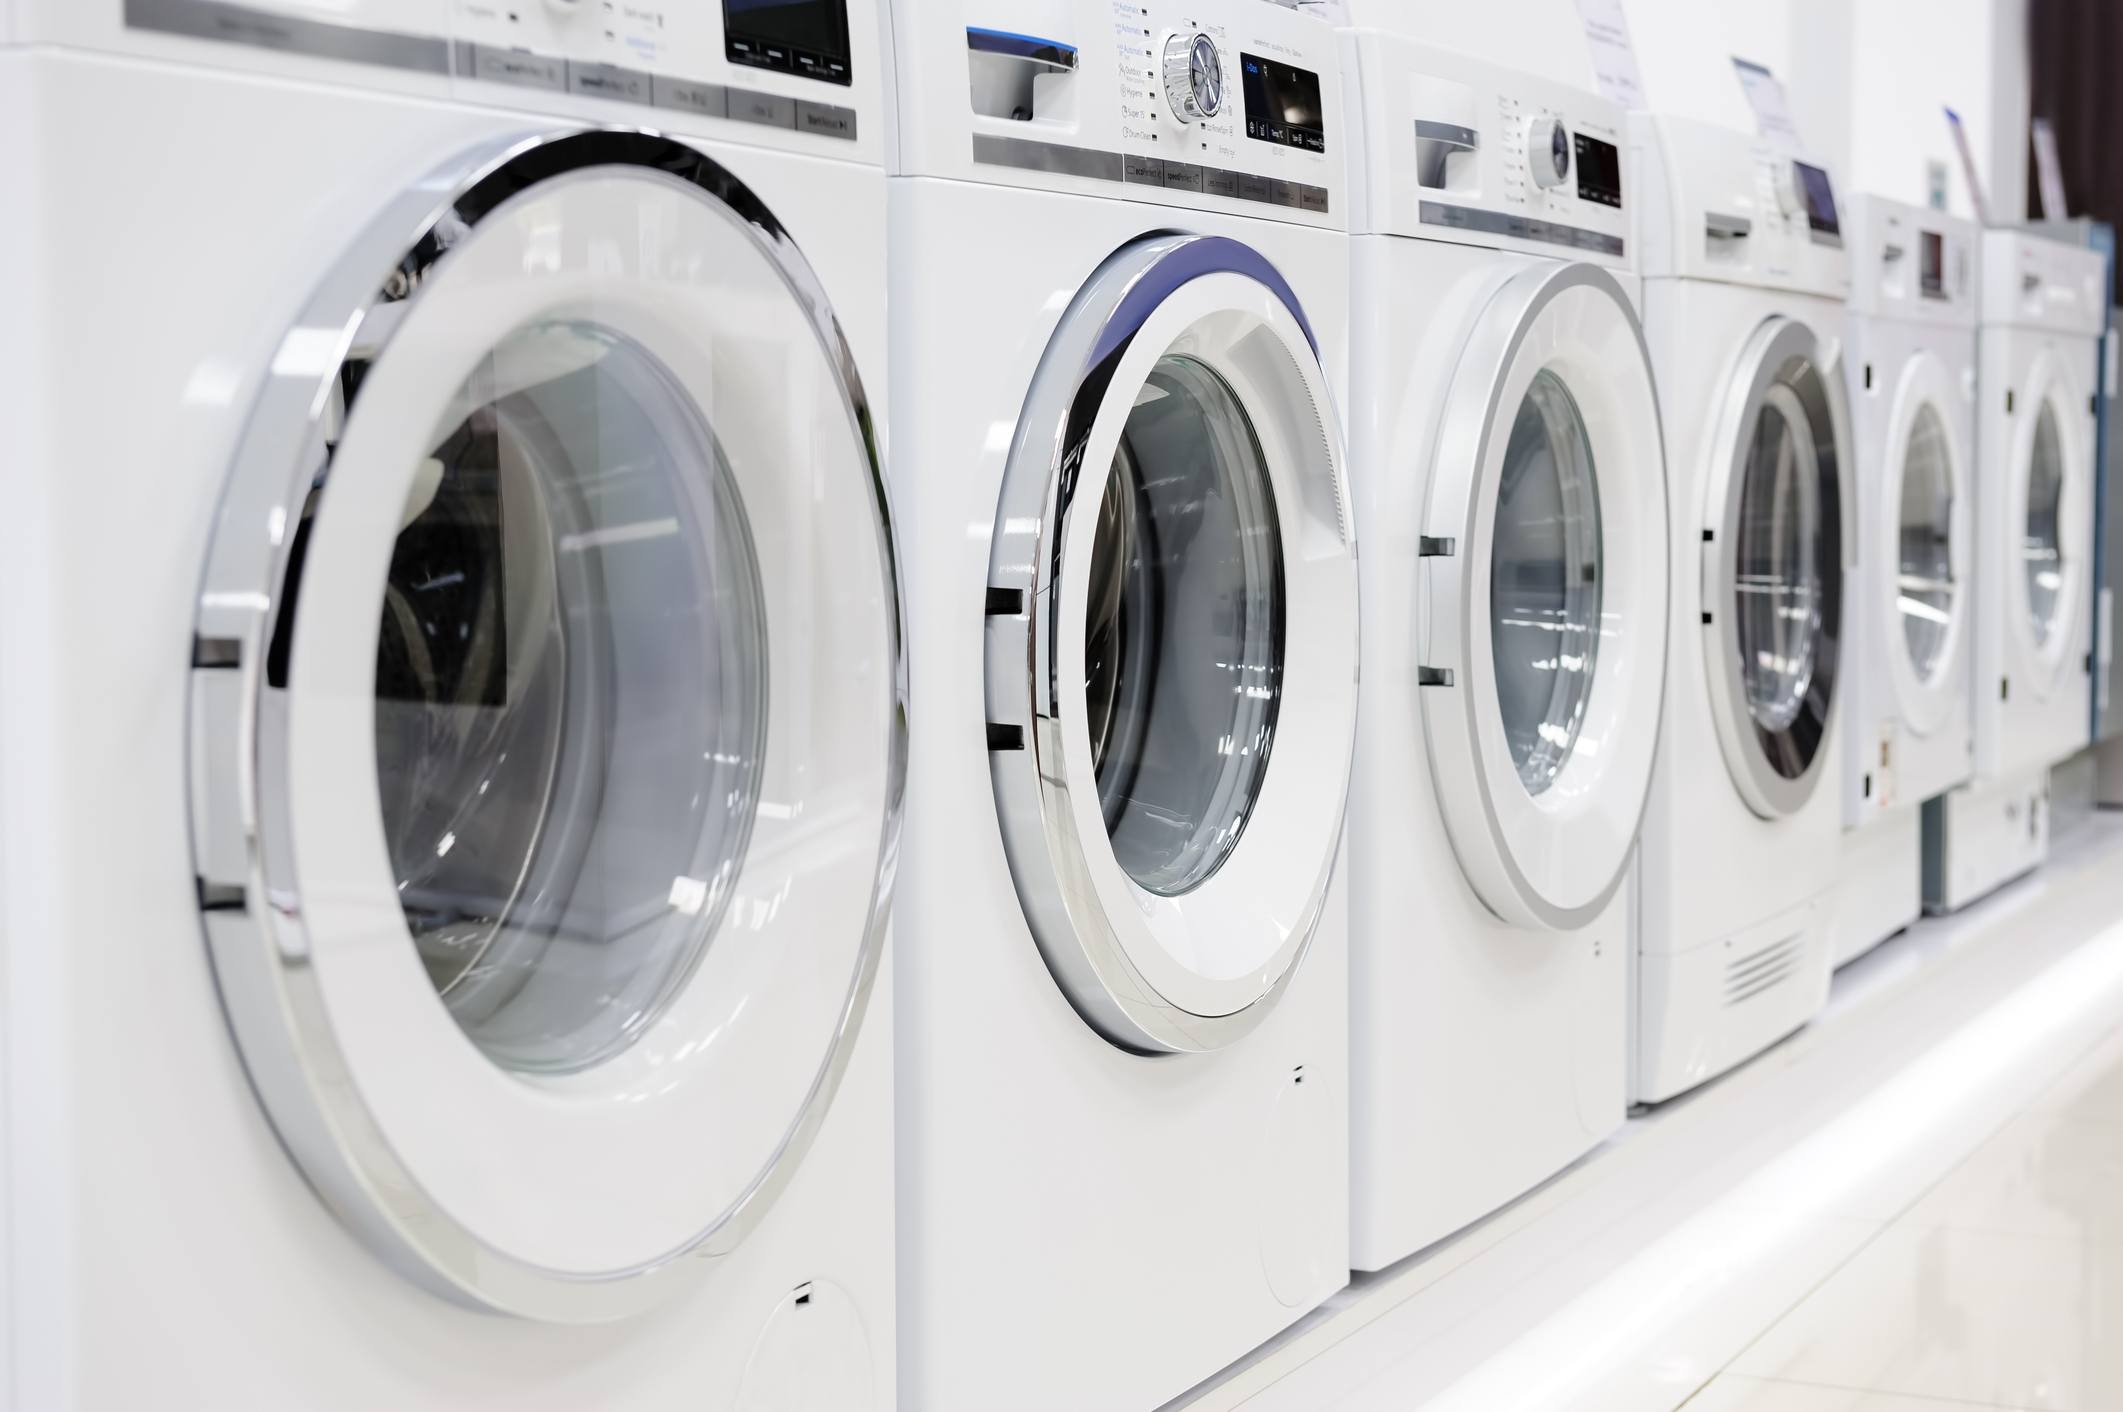 Washing machines and dryer